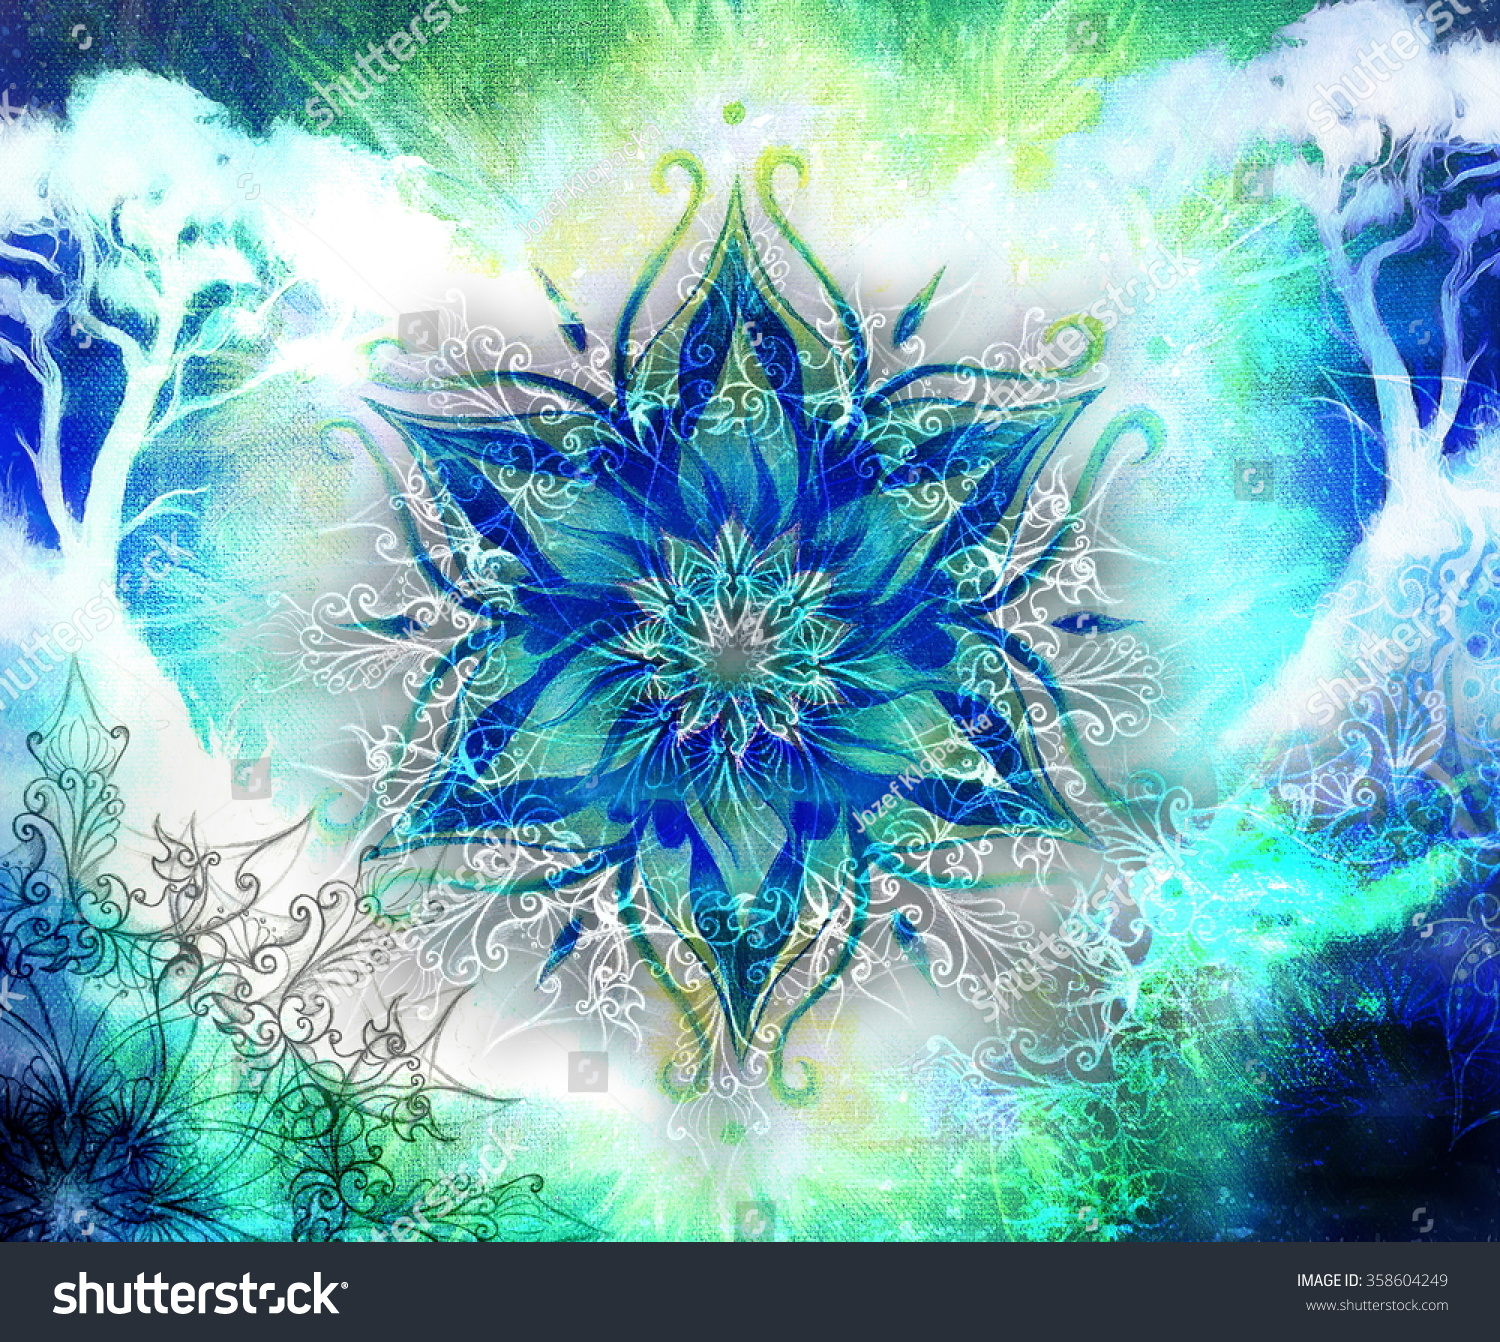 Amazing Wallpaper Marble Mandala - stock-photo-painting-tree-wallpaper-landscape-and-ornamental-mandala-oriental-background-collage-blue-black-358604249  Picture_752793.jpg